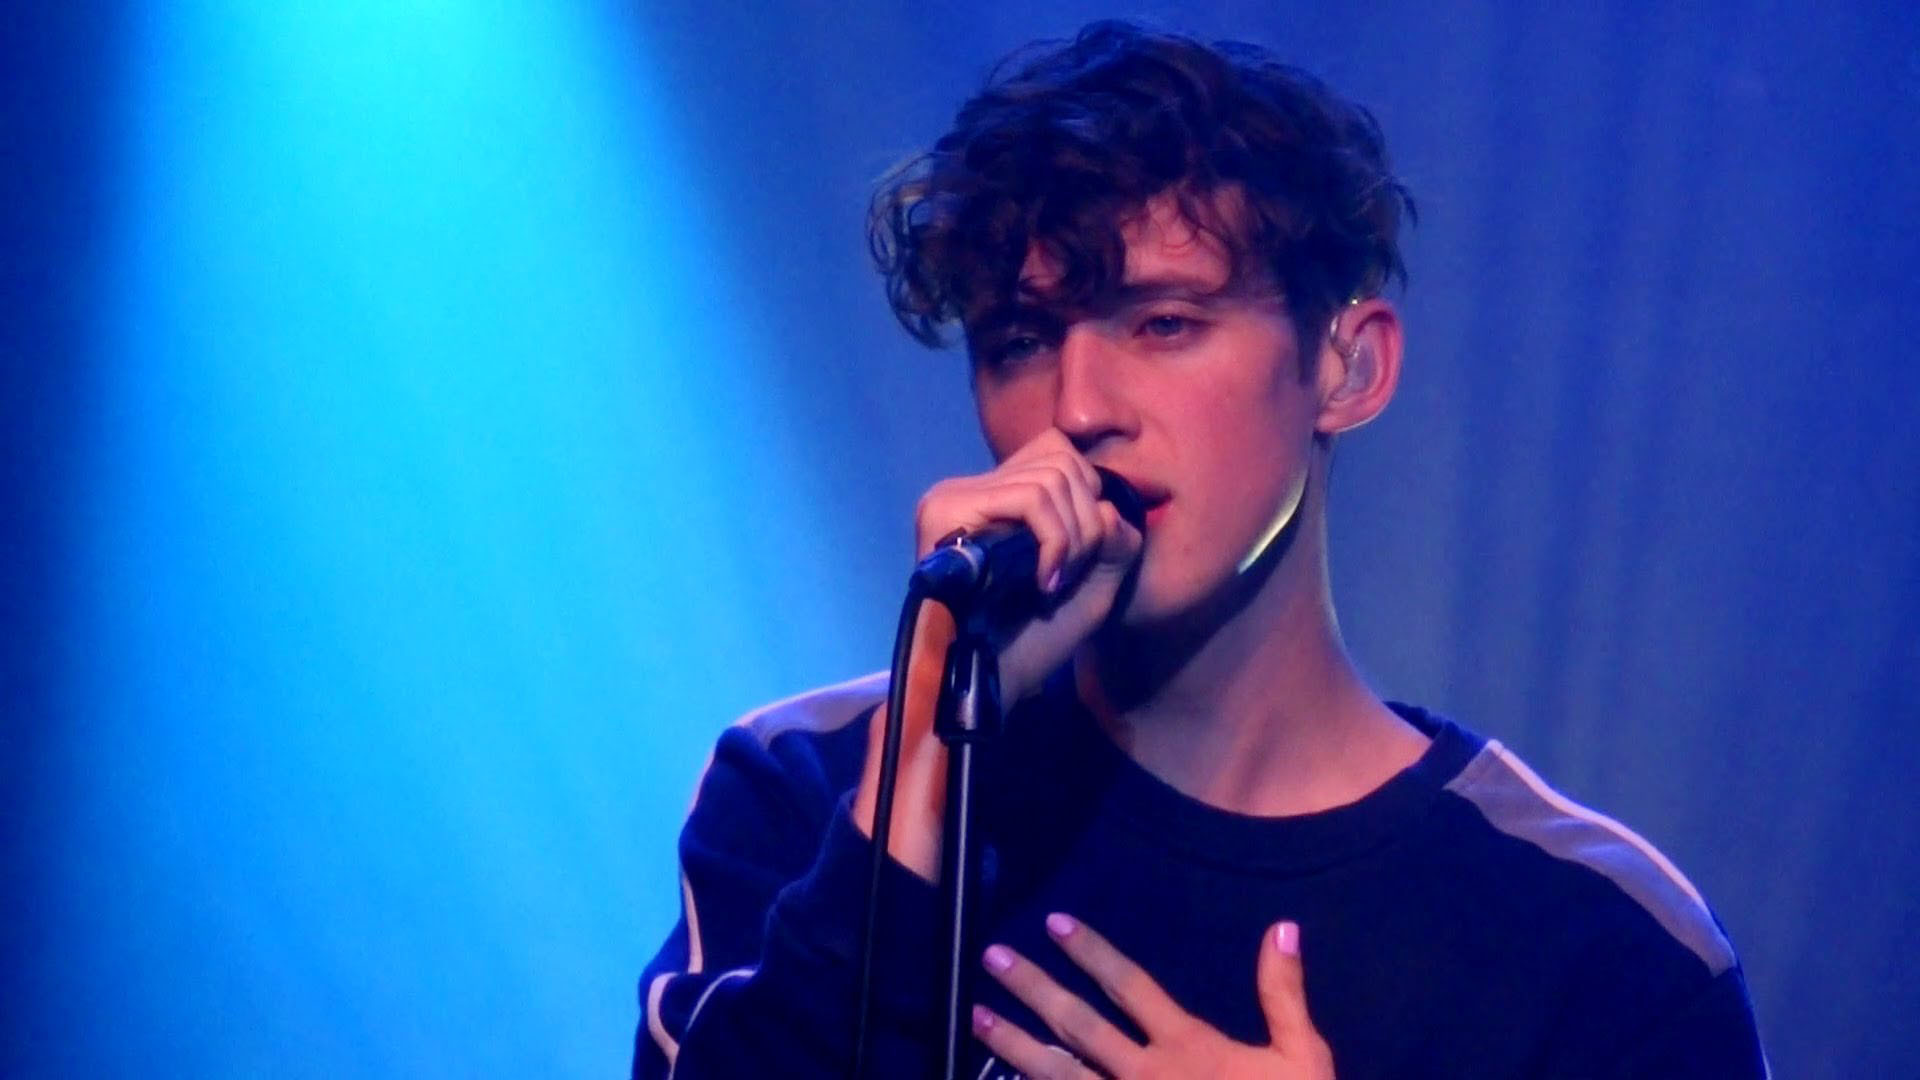 troye sivan widescreen